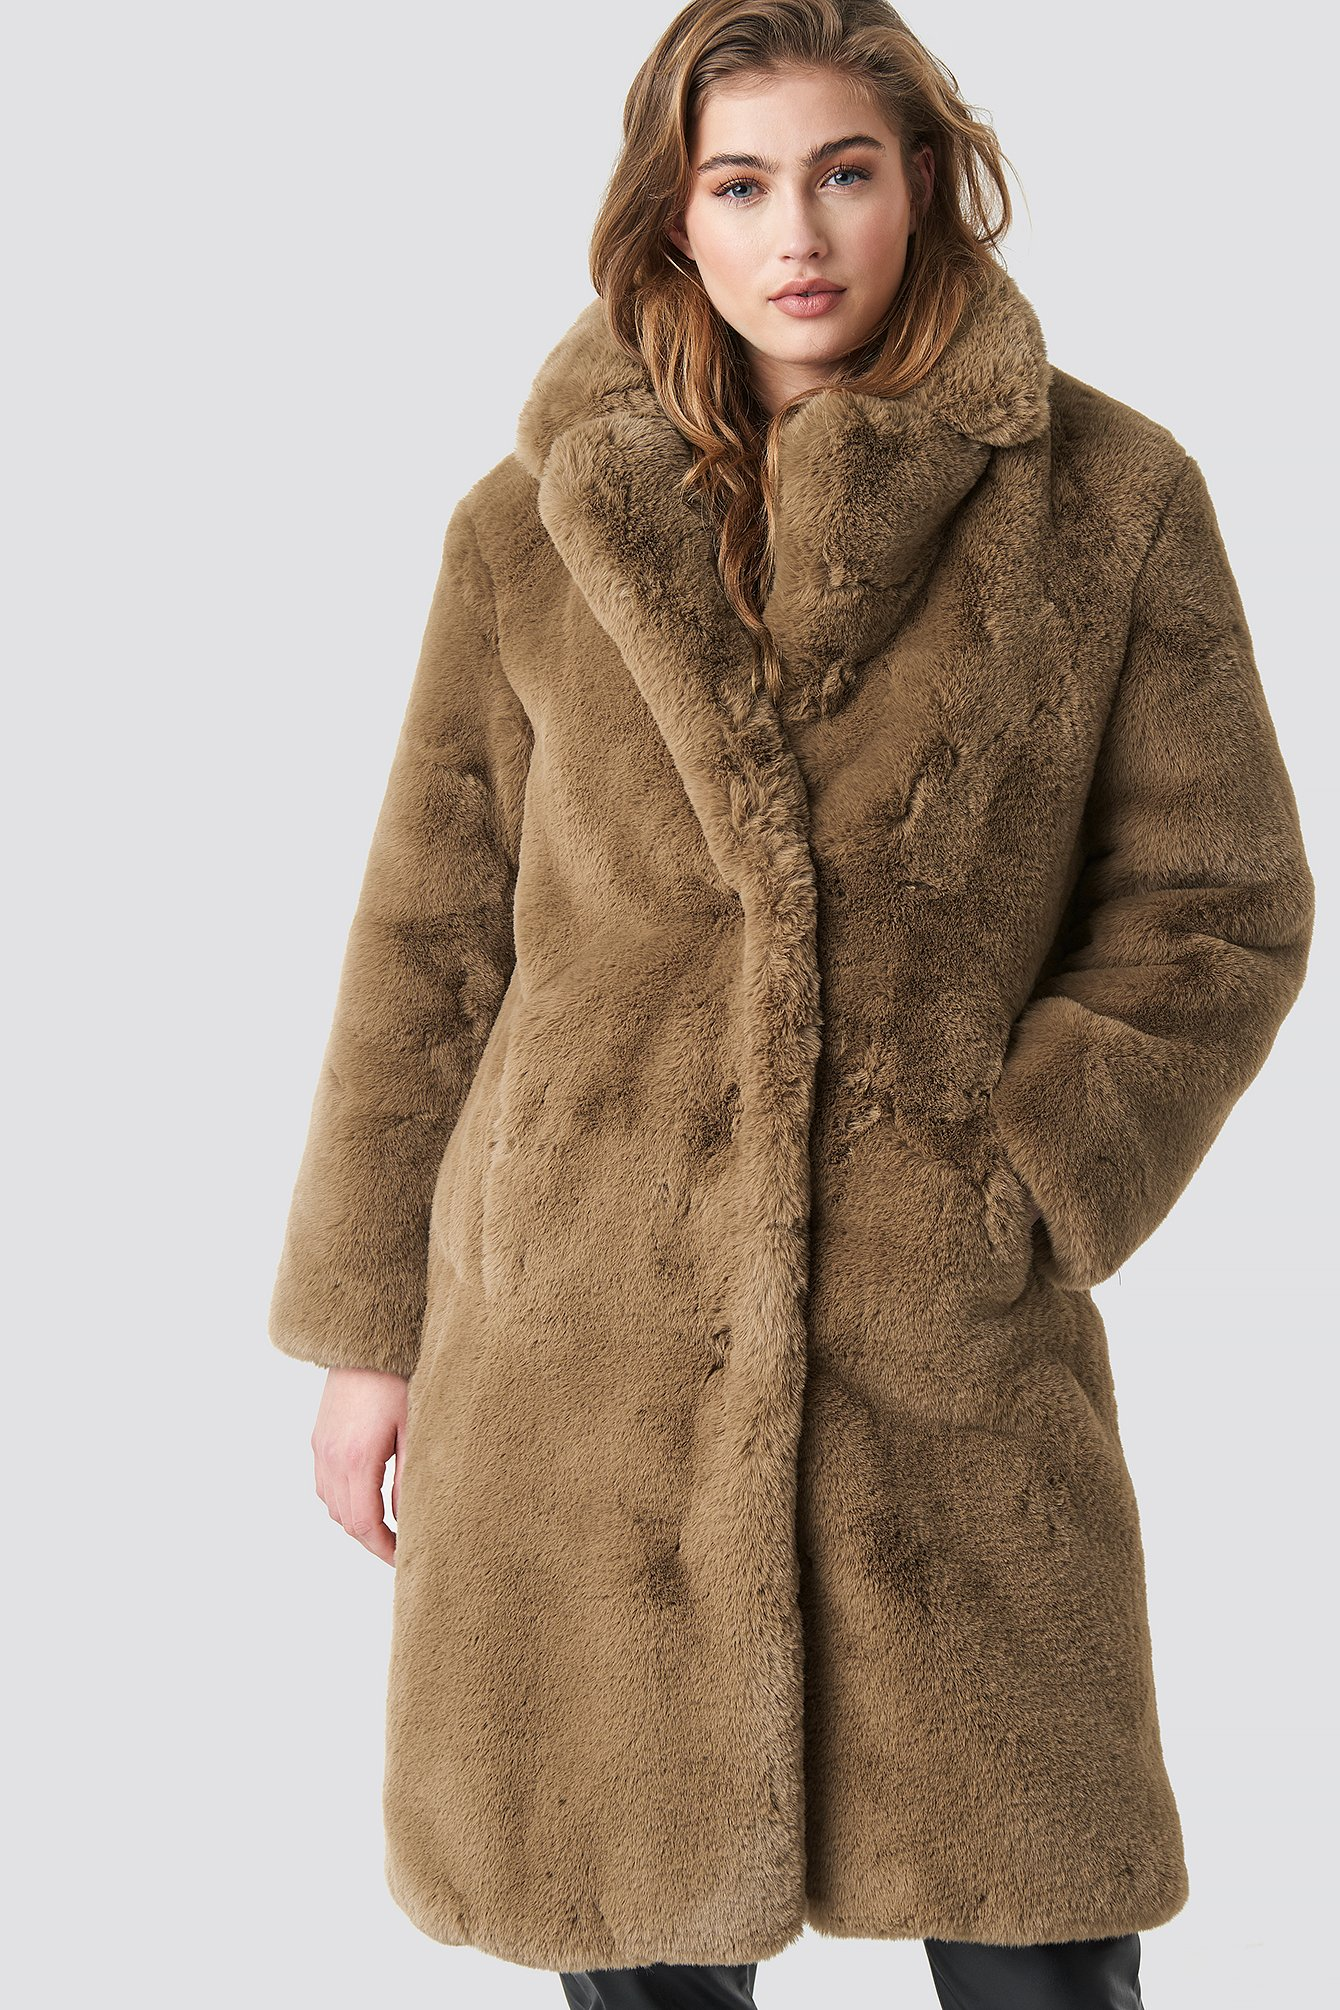 mango -  Chilly Coat - Brown,Beige